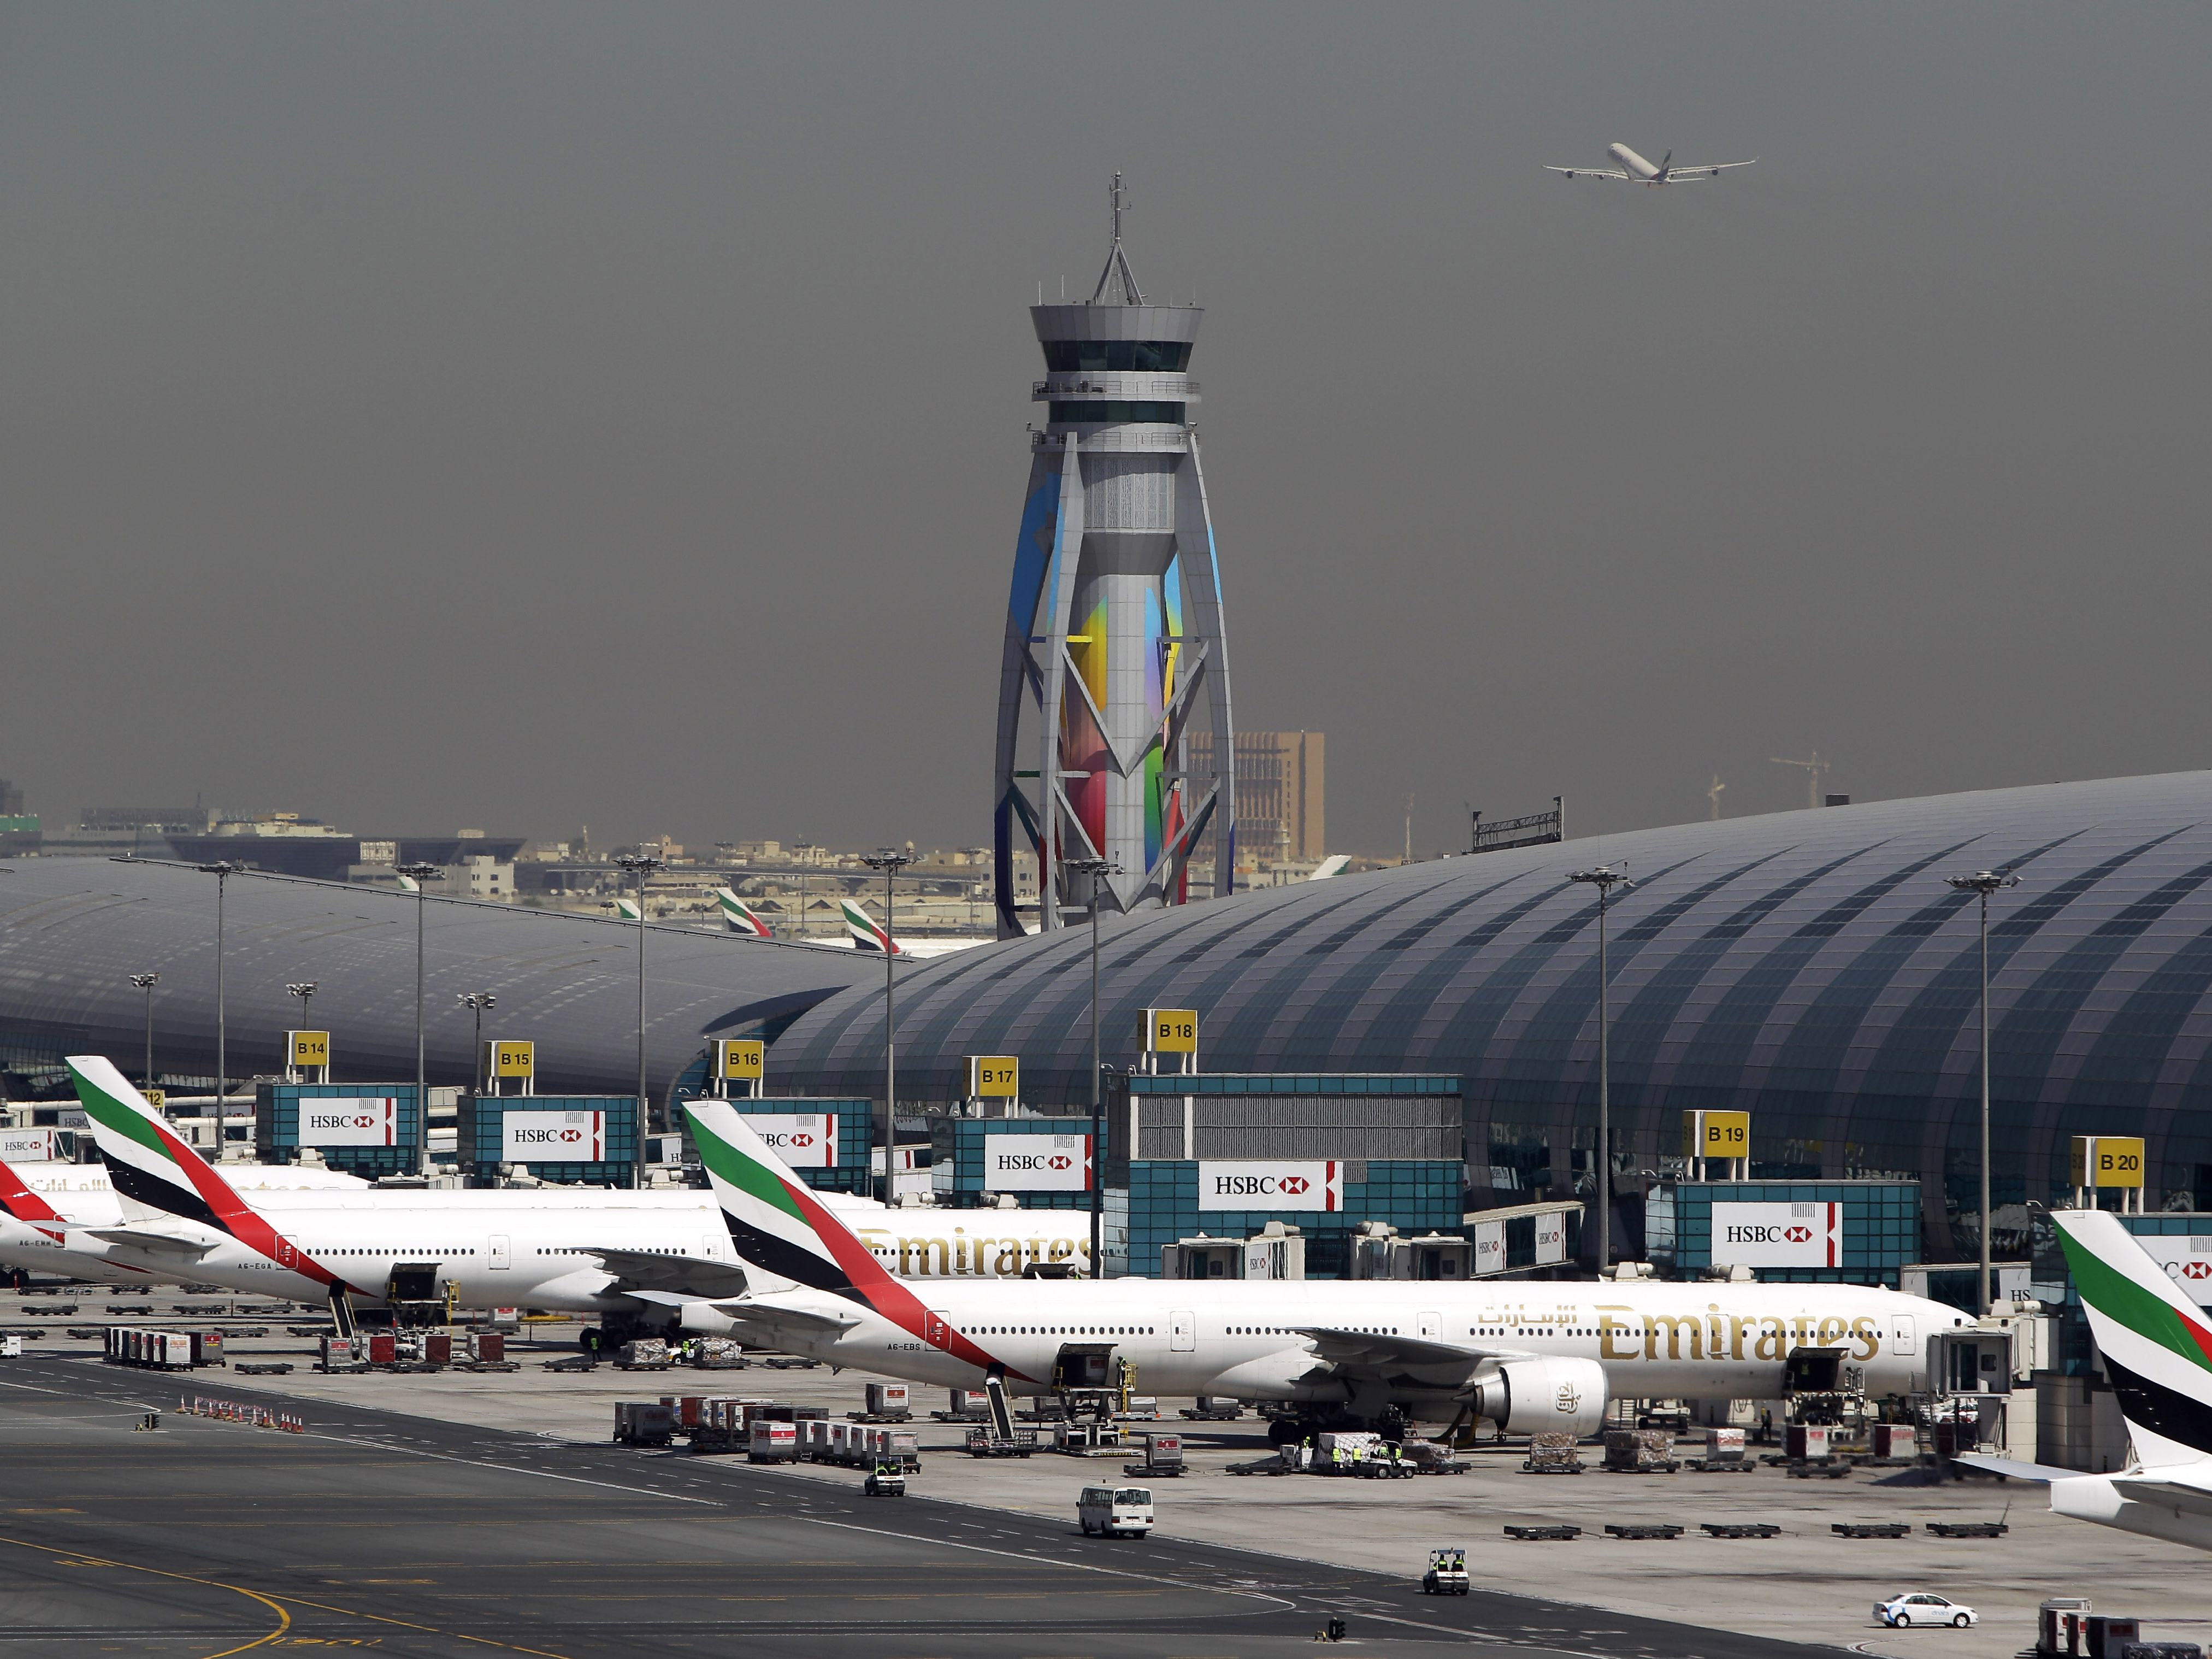 Blue apron npr - Emirates Passenger Planes Are Parked At Their Gates At Dubai International Airport In The United Arab Emirates The U S Restrictions Require Most